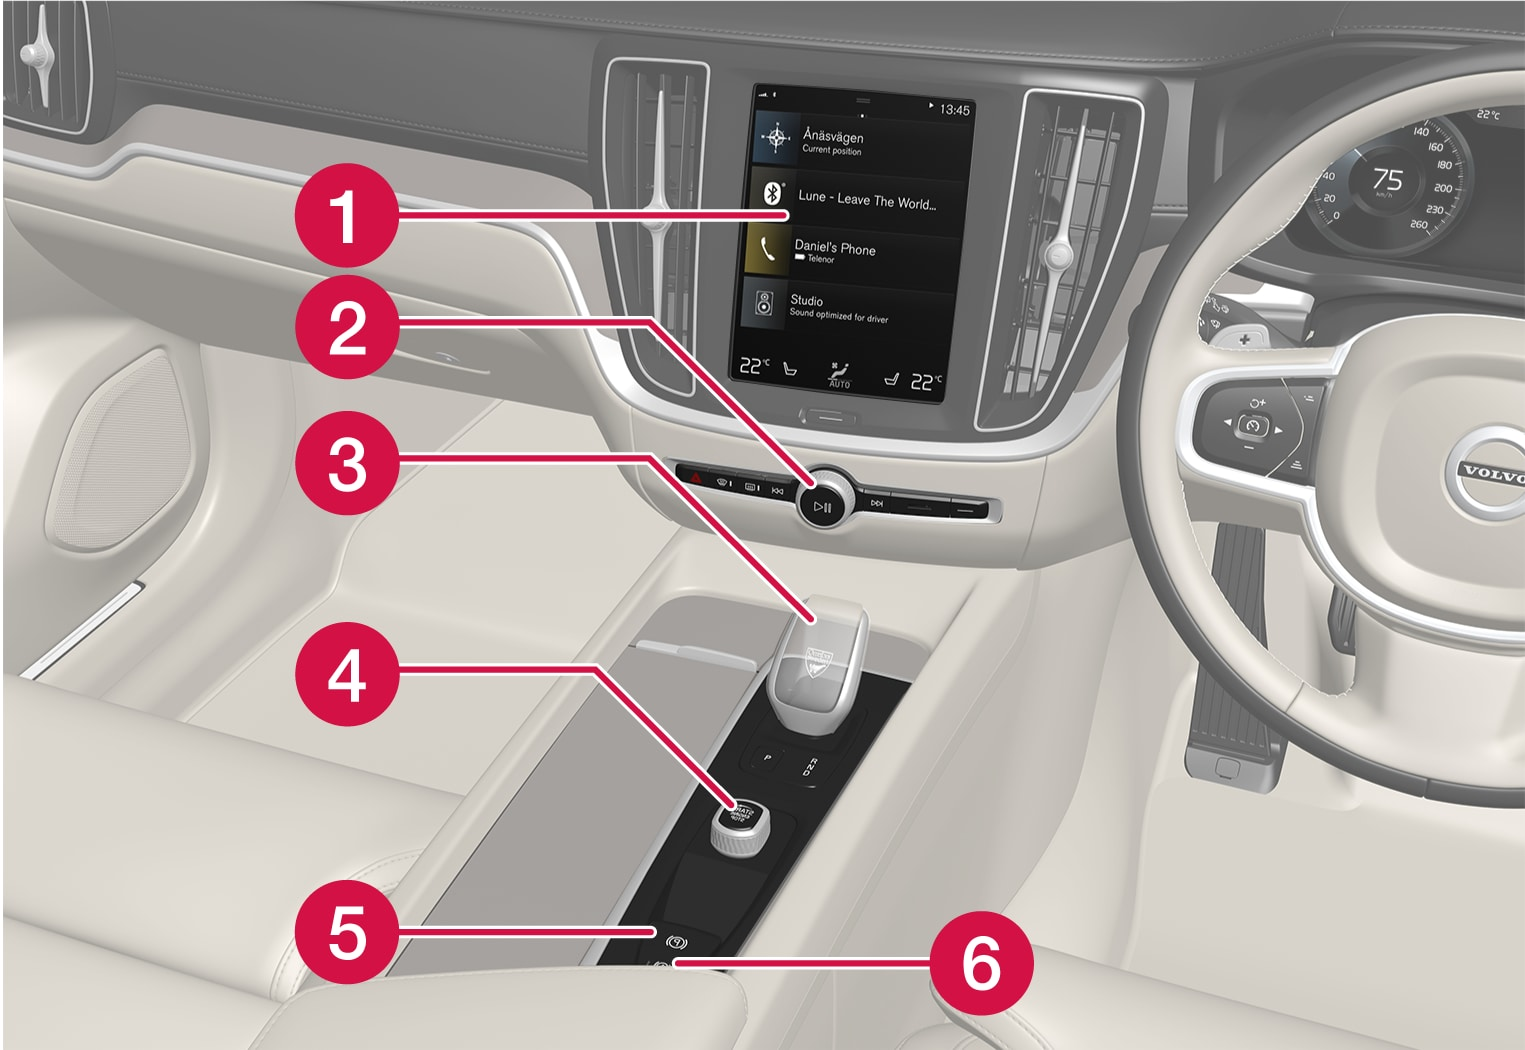 P5-21w22-S/V/XC60Controls in tunnel and center console, right hand drive